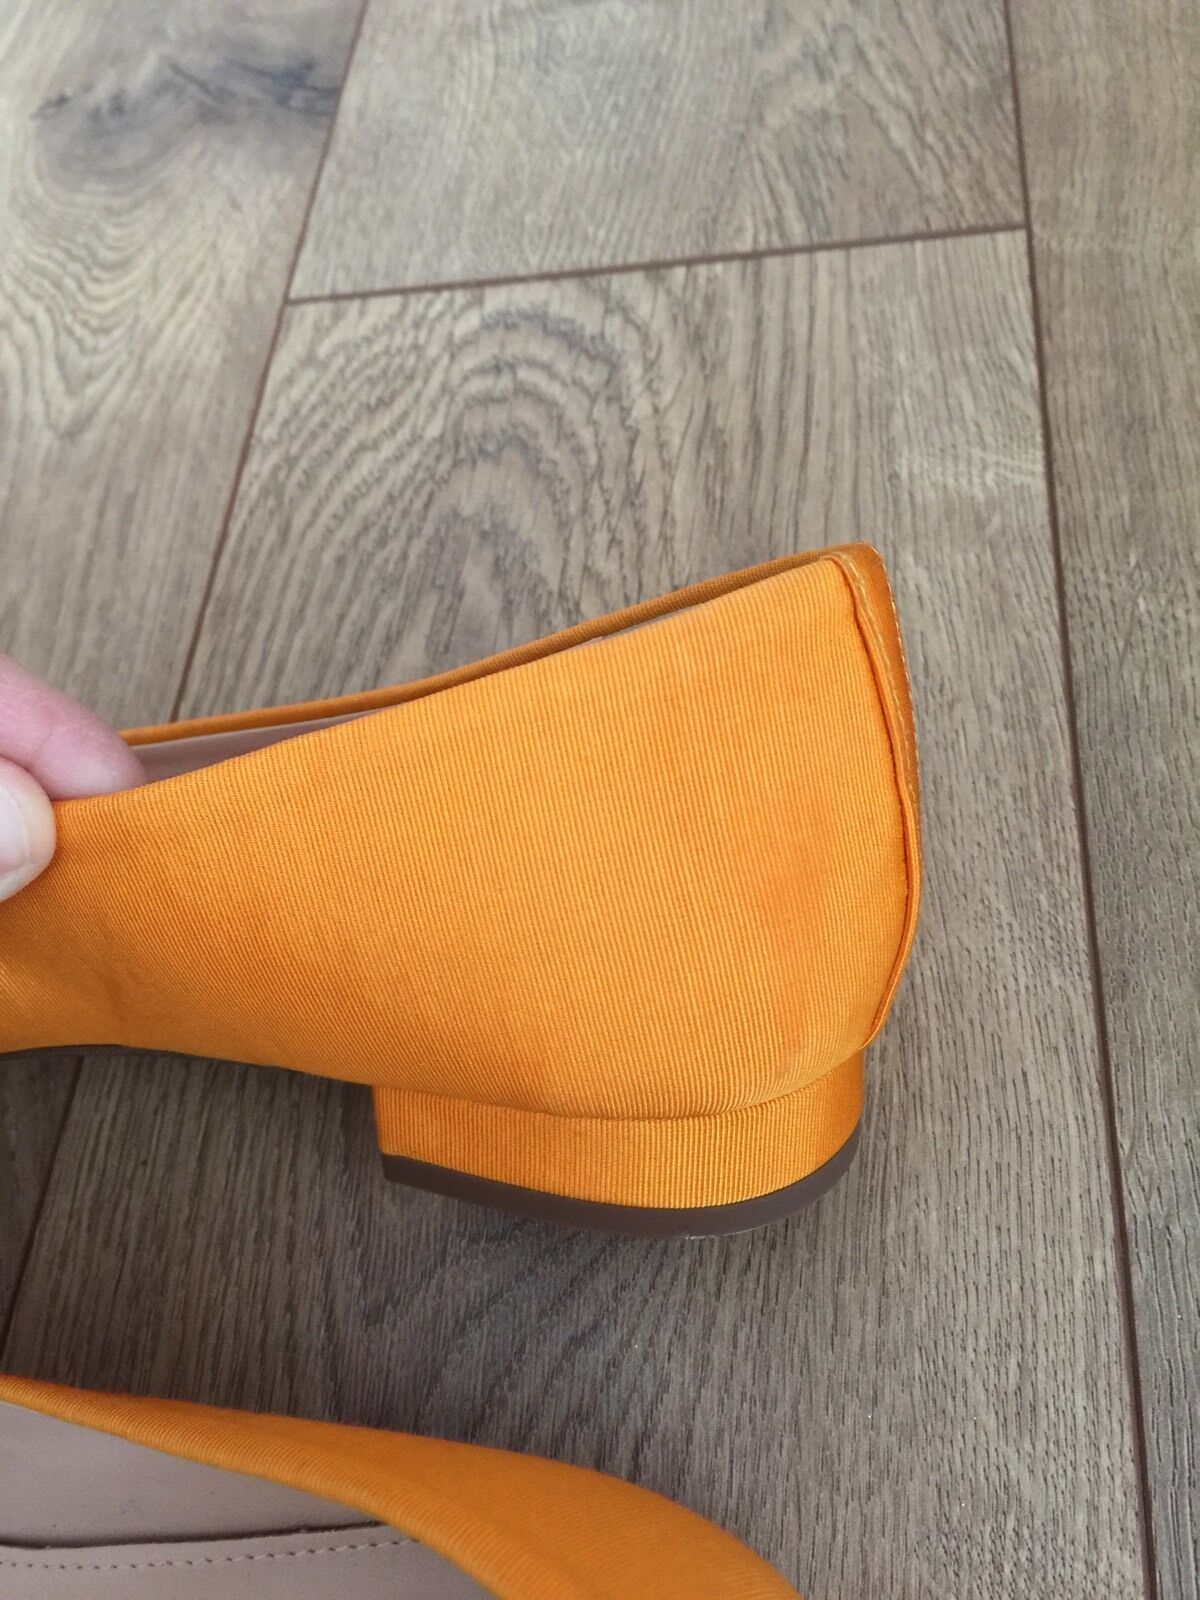 New JCrew Embroiderouge Embroiderouge Embroiderouge Pointed-Toe Flats 7 Tangelo F7987 jaune Floral NEW 14cb0f